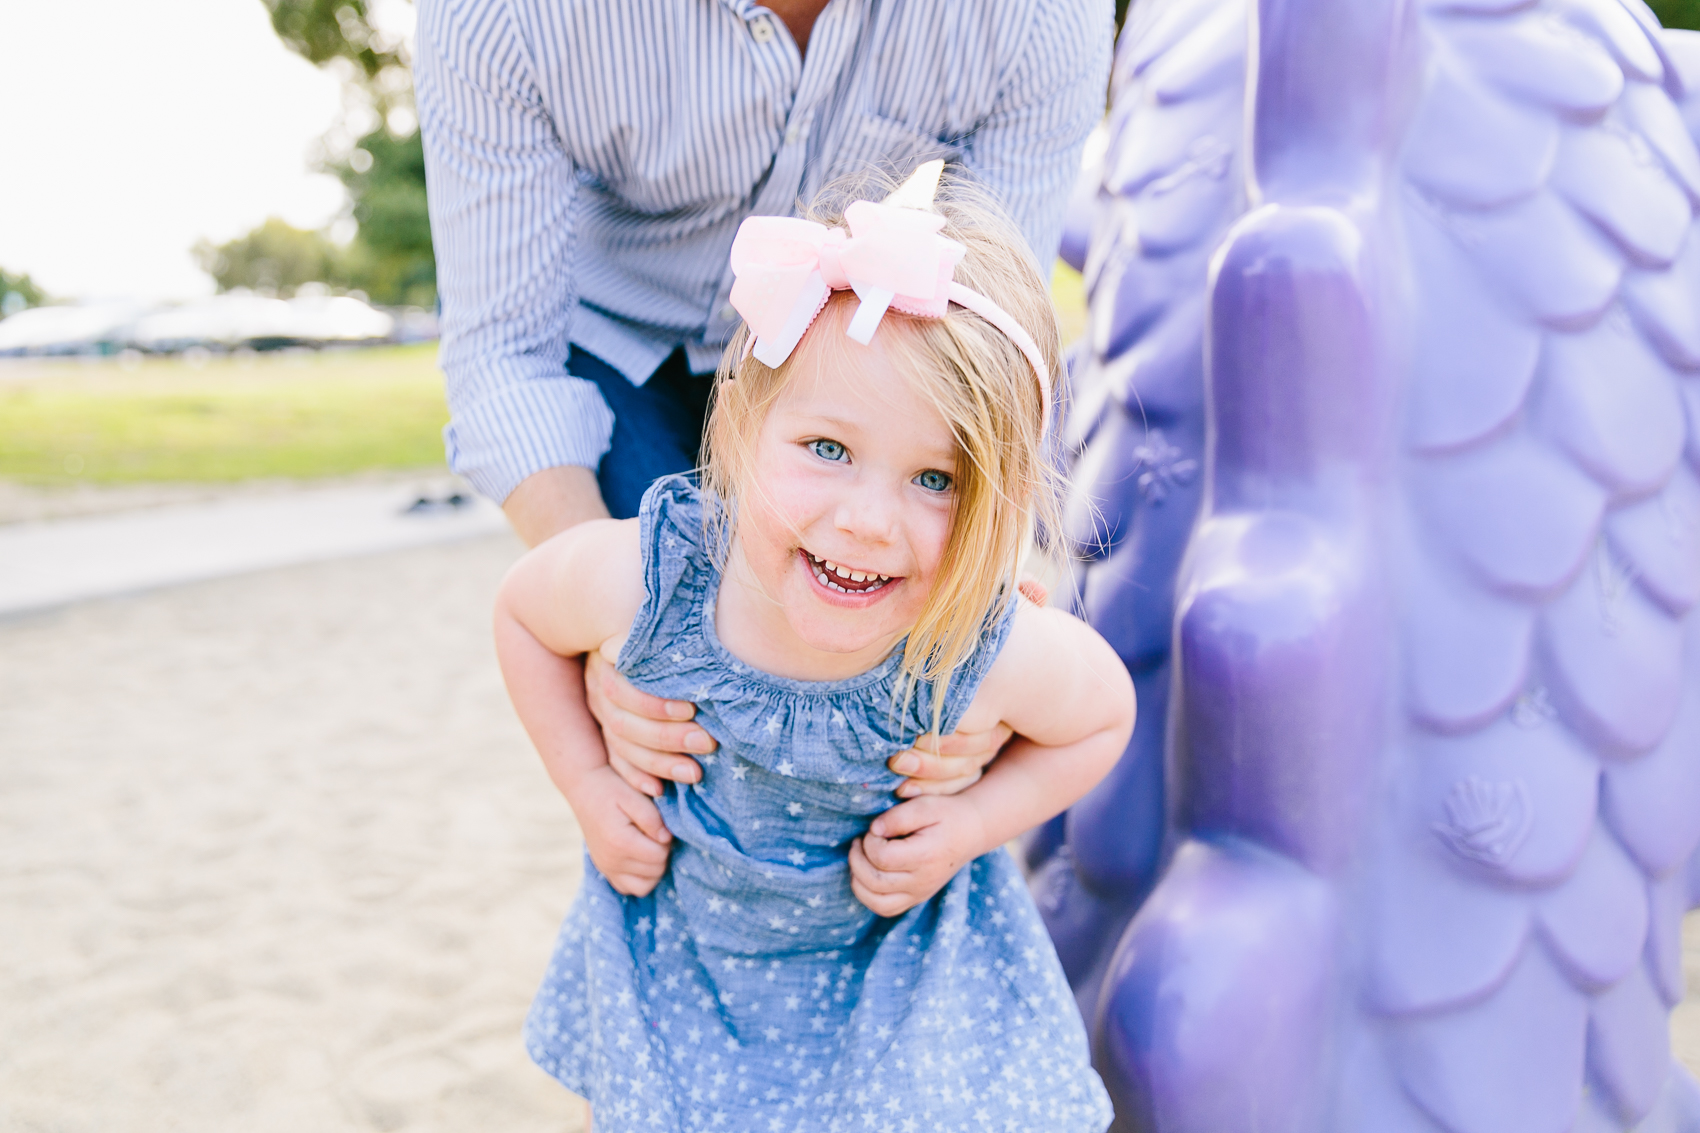 Los_Angeles_Family_Photographer_Family_Photo_Baby_Kids_Children_Southern_California-1427.jpg